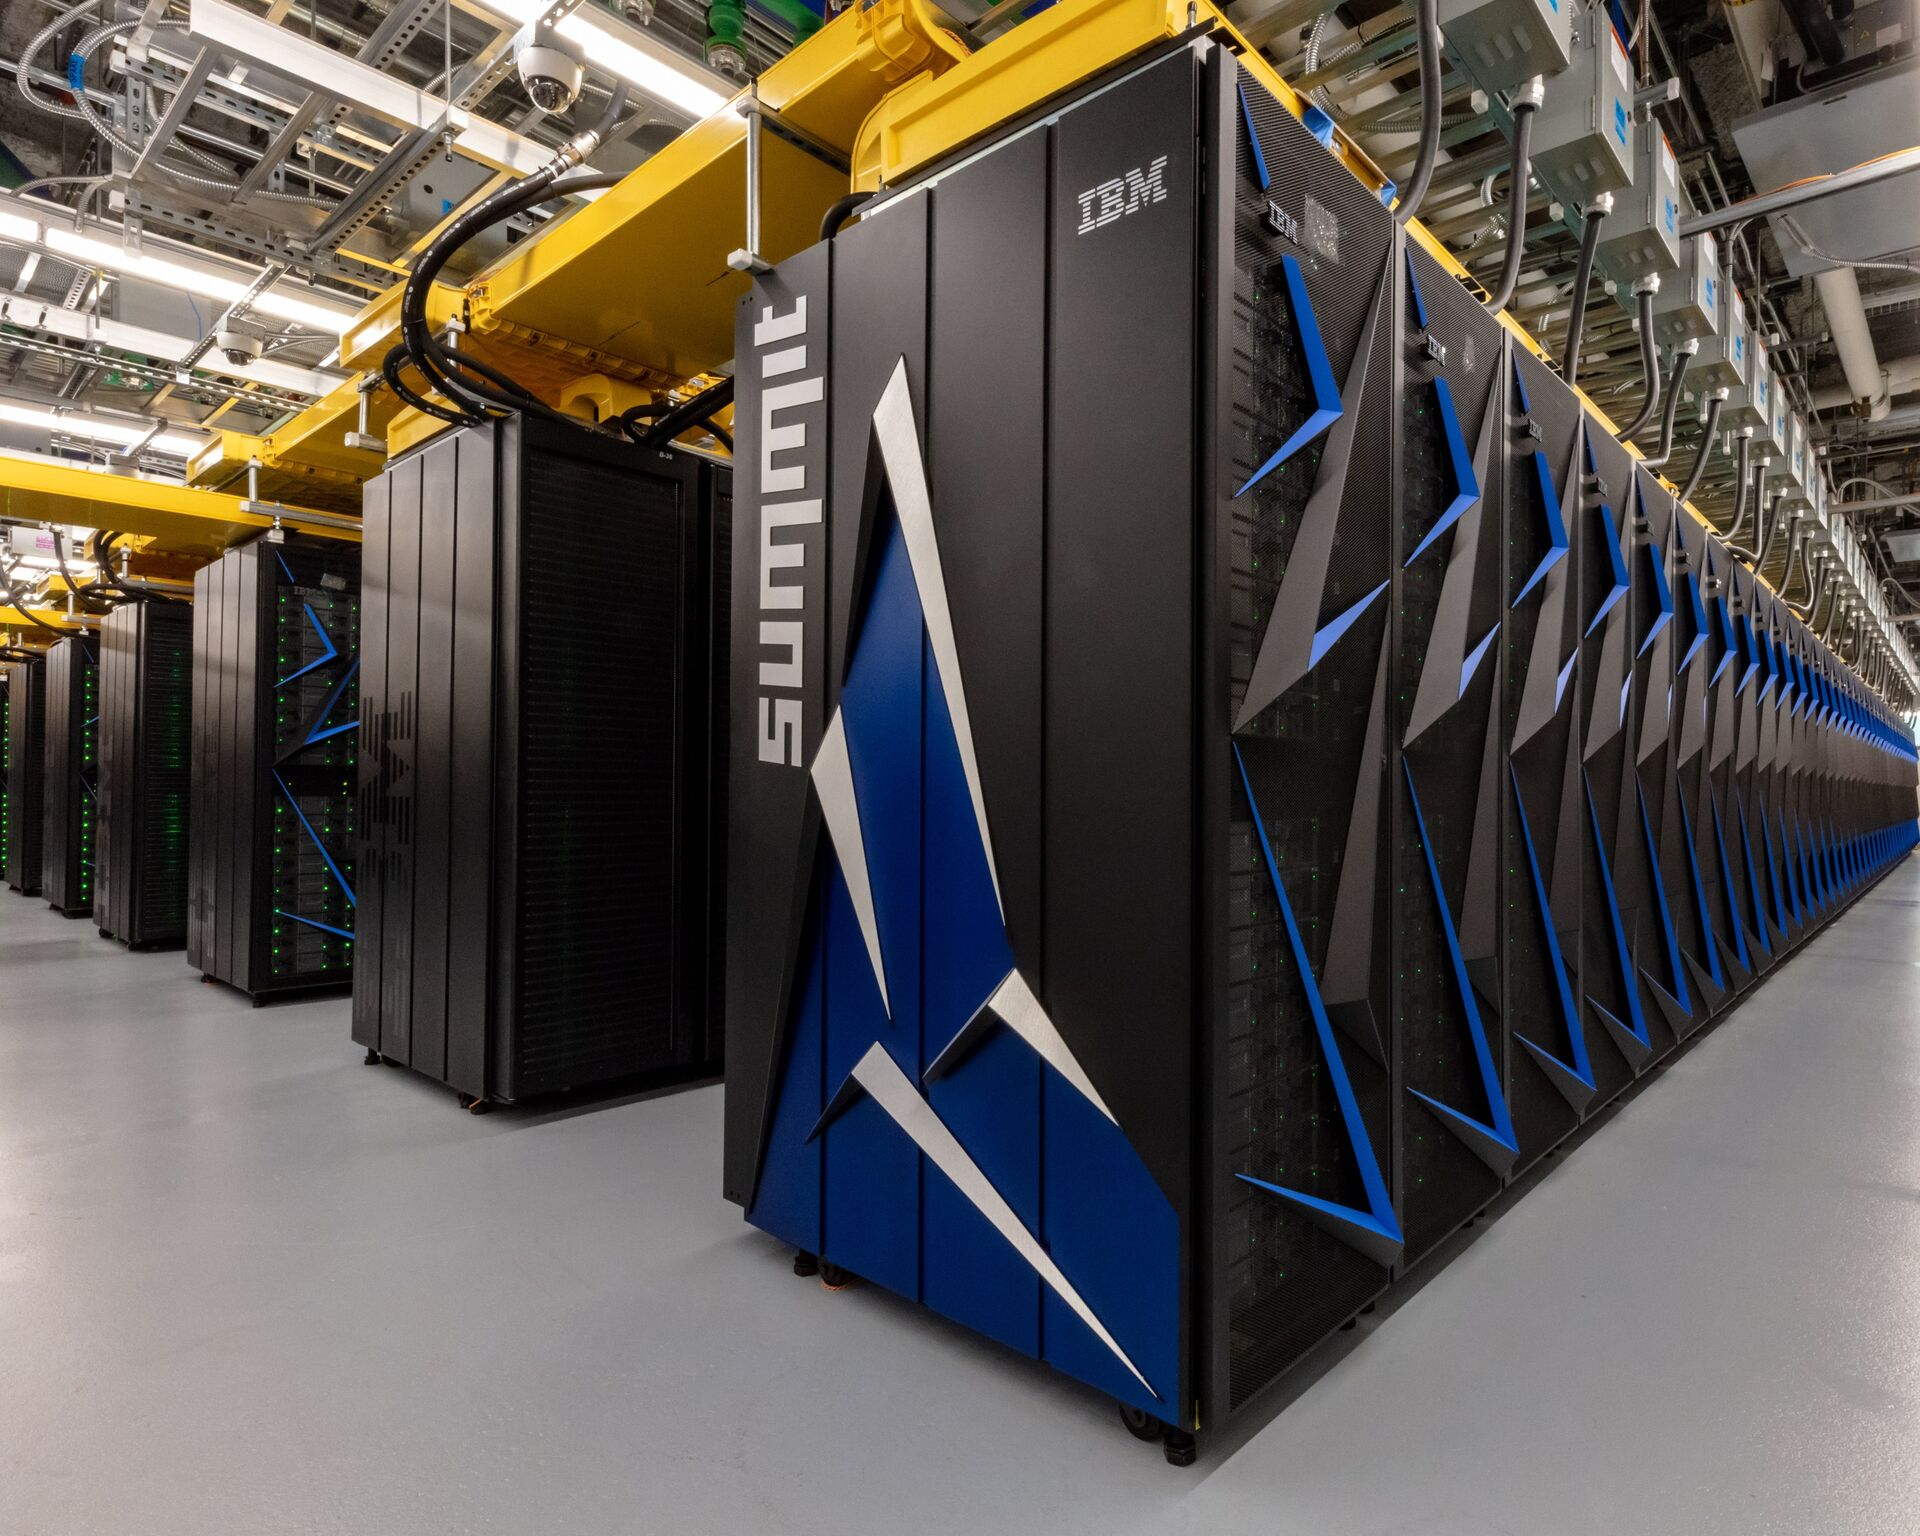 China tops the United States as the number one supercomputer manufacturer